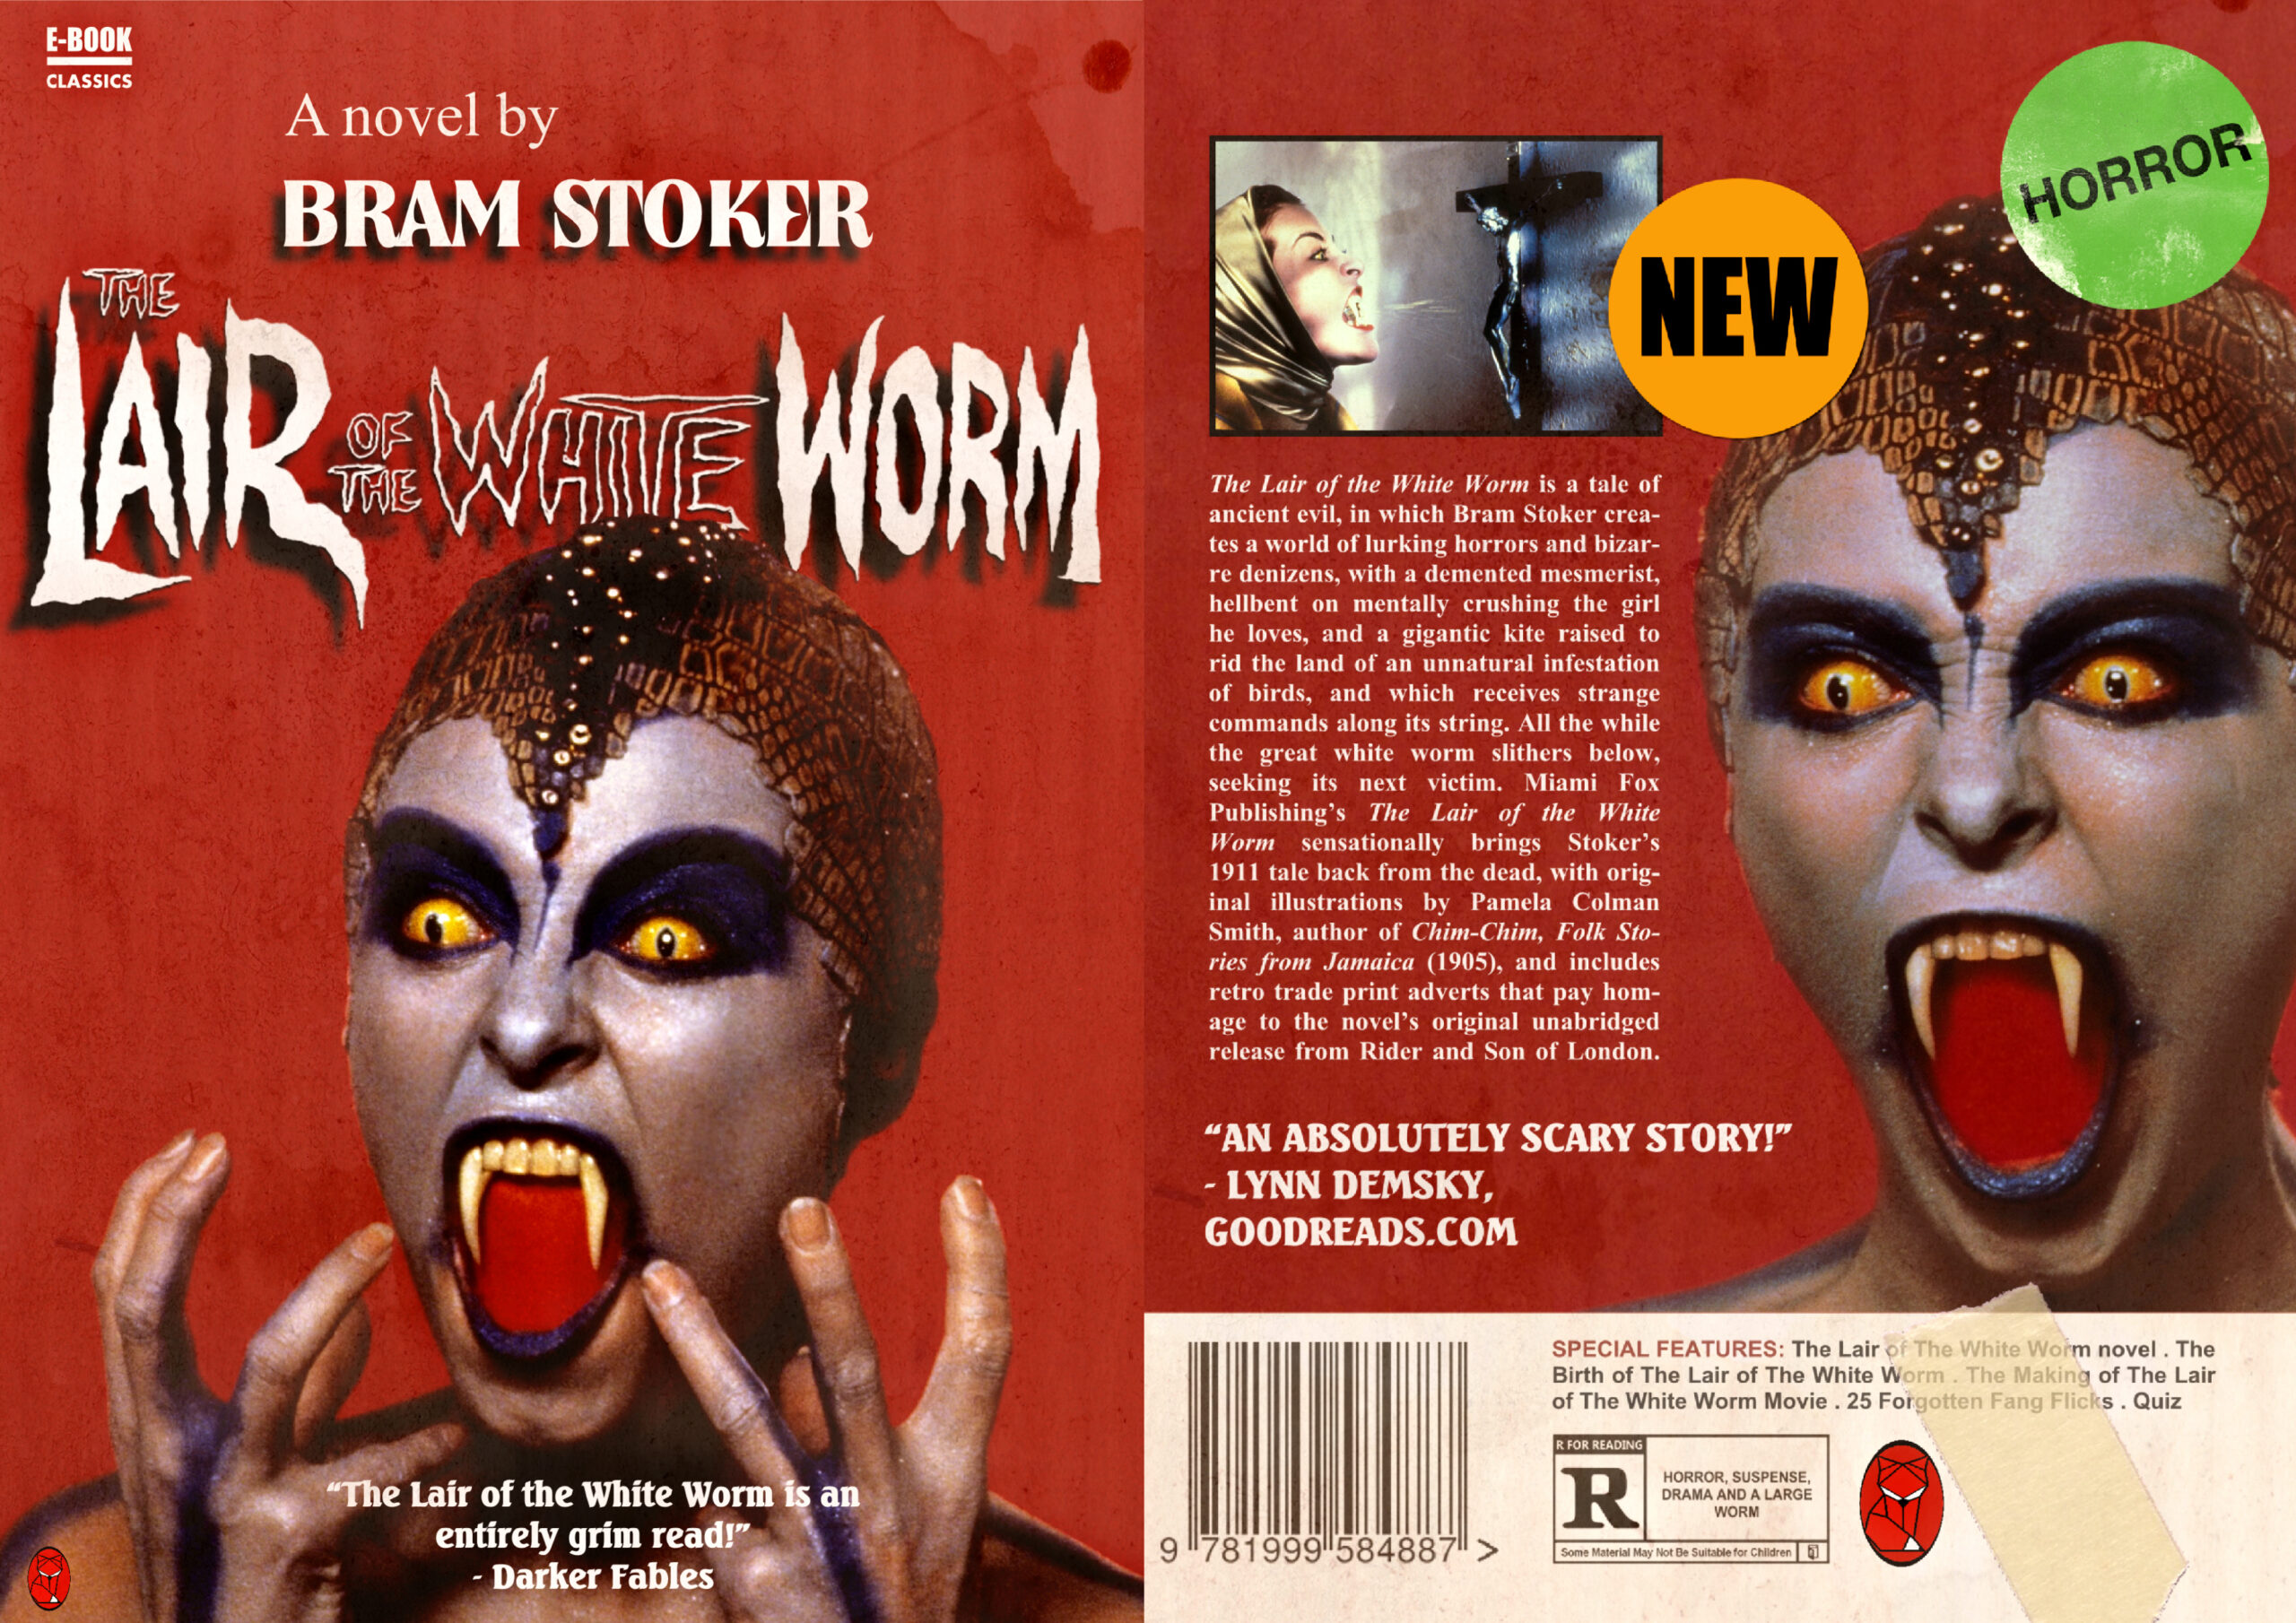 MIAMI FOX PUBLISHING RELEASE A REVISED VERSION OF BRAM STOKER'S 'THE LAIR OF THE WHITE WORM' ON EBOOK